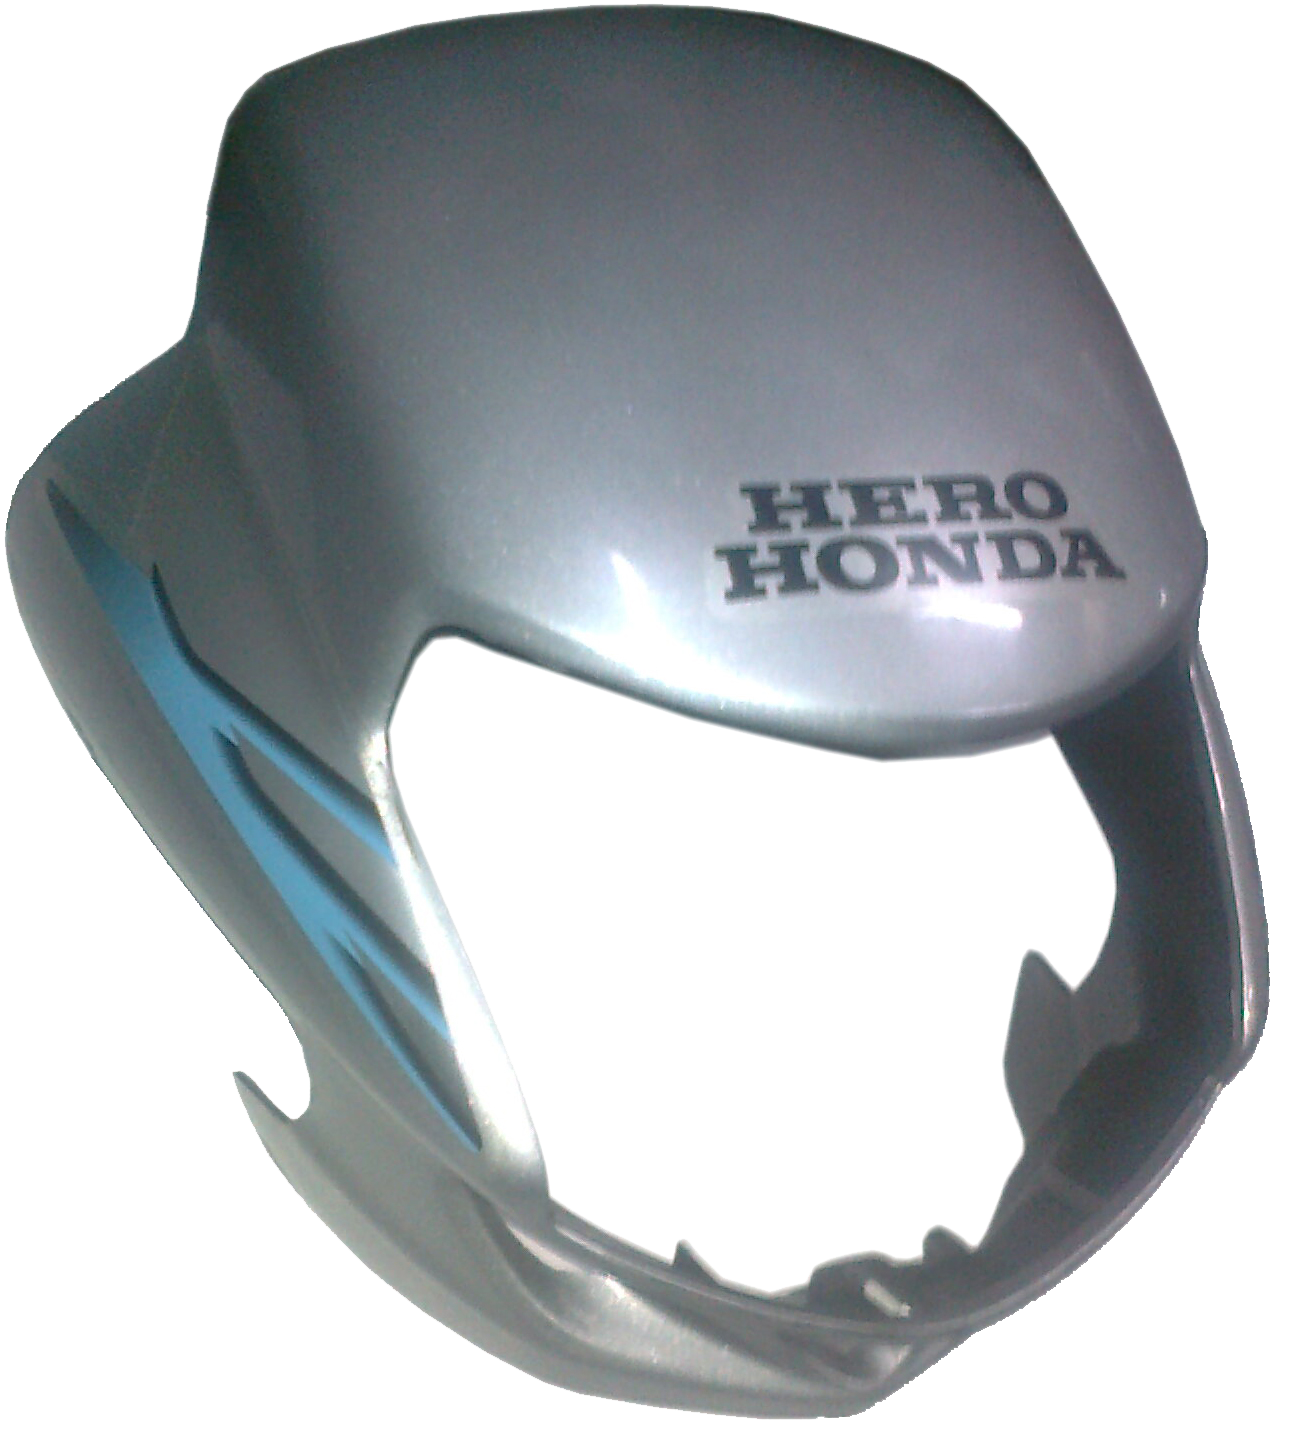 Shop At Hero Honda Cd Deluxe Nm Bike Parts And Accessories